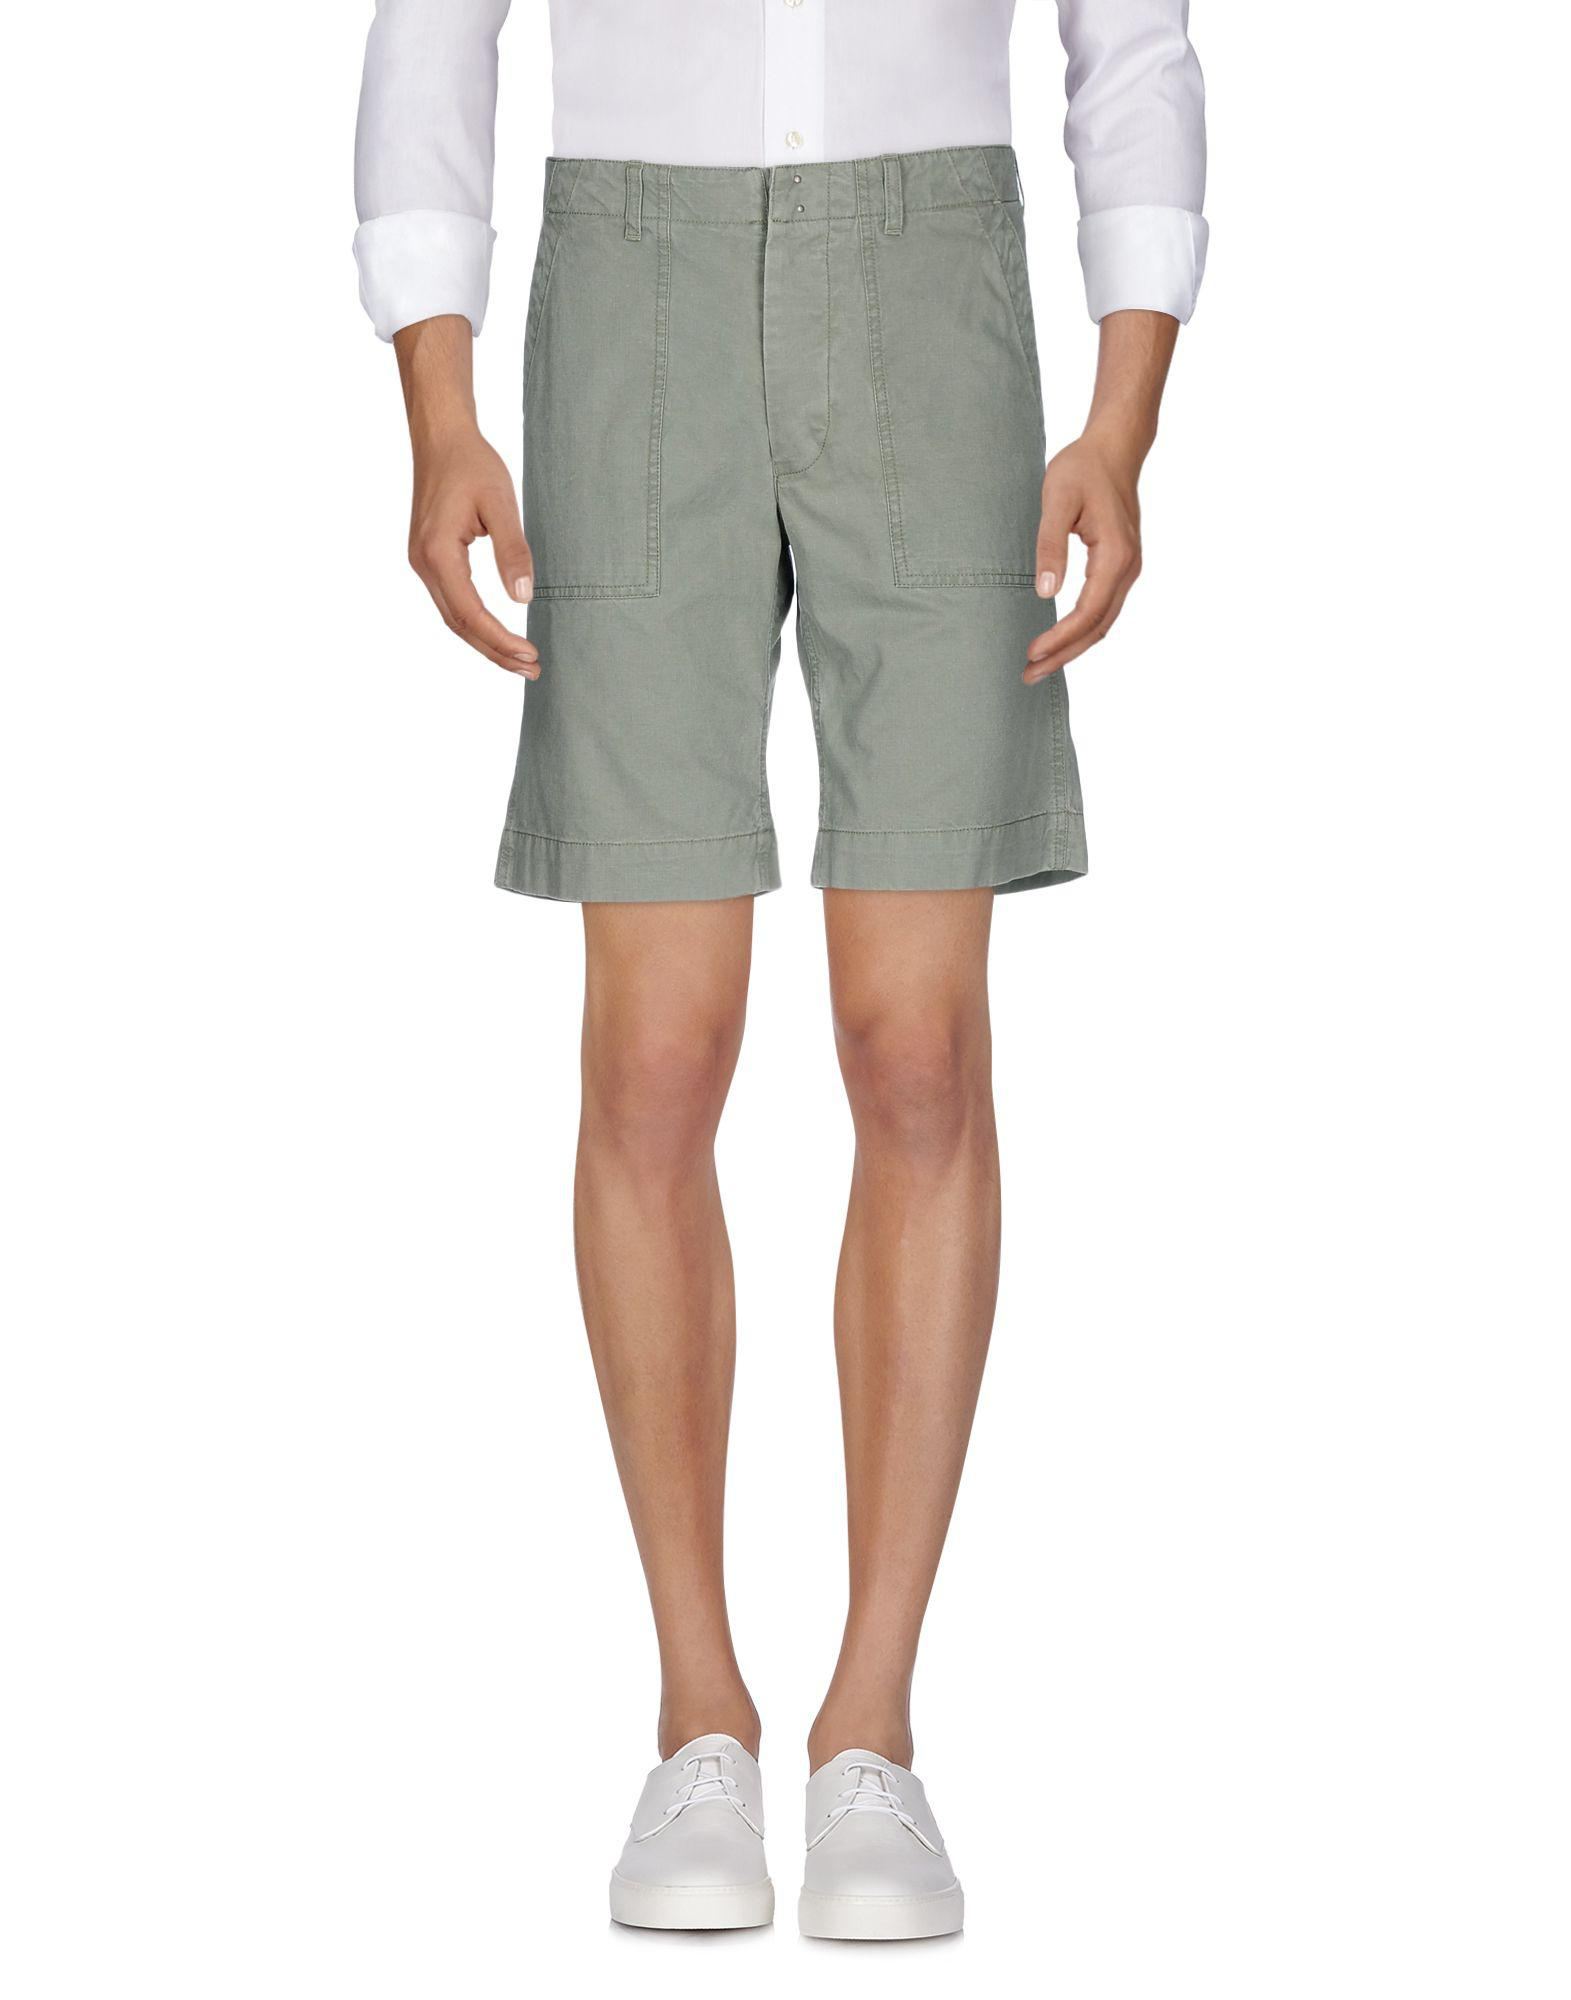 TROUSERS - Bermuda shorts Officine Generale Sale Pictures Cheap Classic xuWbYp